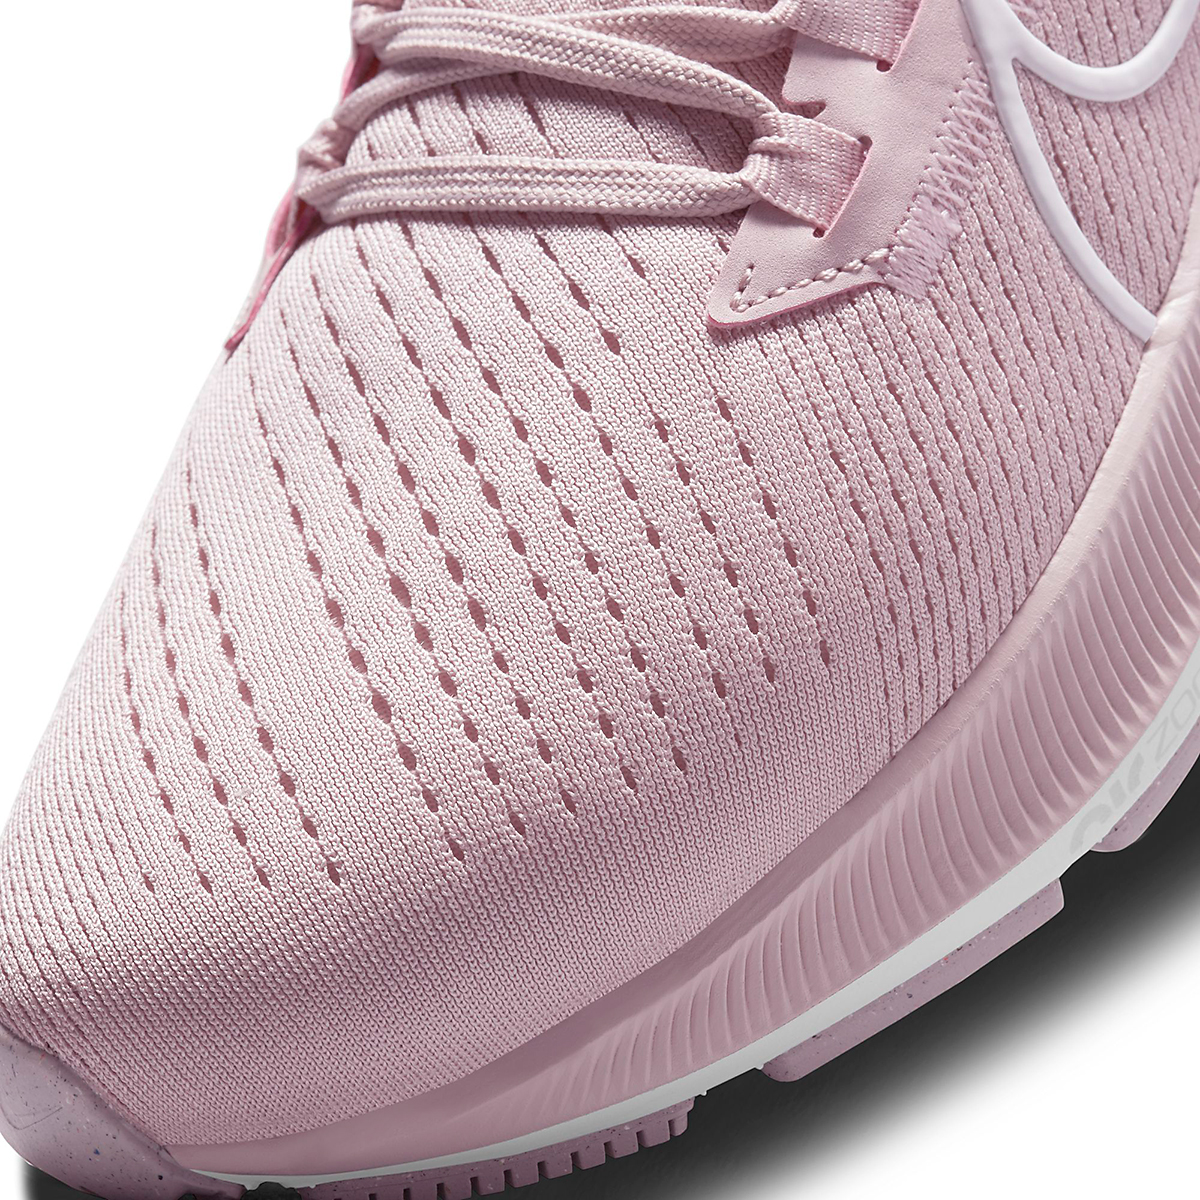 Women's Nike Air Zoom Pegasus 38 Running Shoe - Color: Champagne/White/Arctic Pink - Size: 5 - Width: Regular, Champagne/White/Arctic Pink, large, image 4